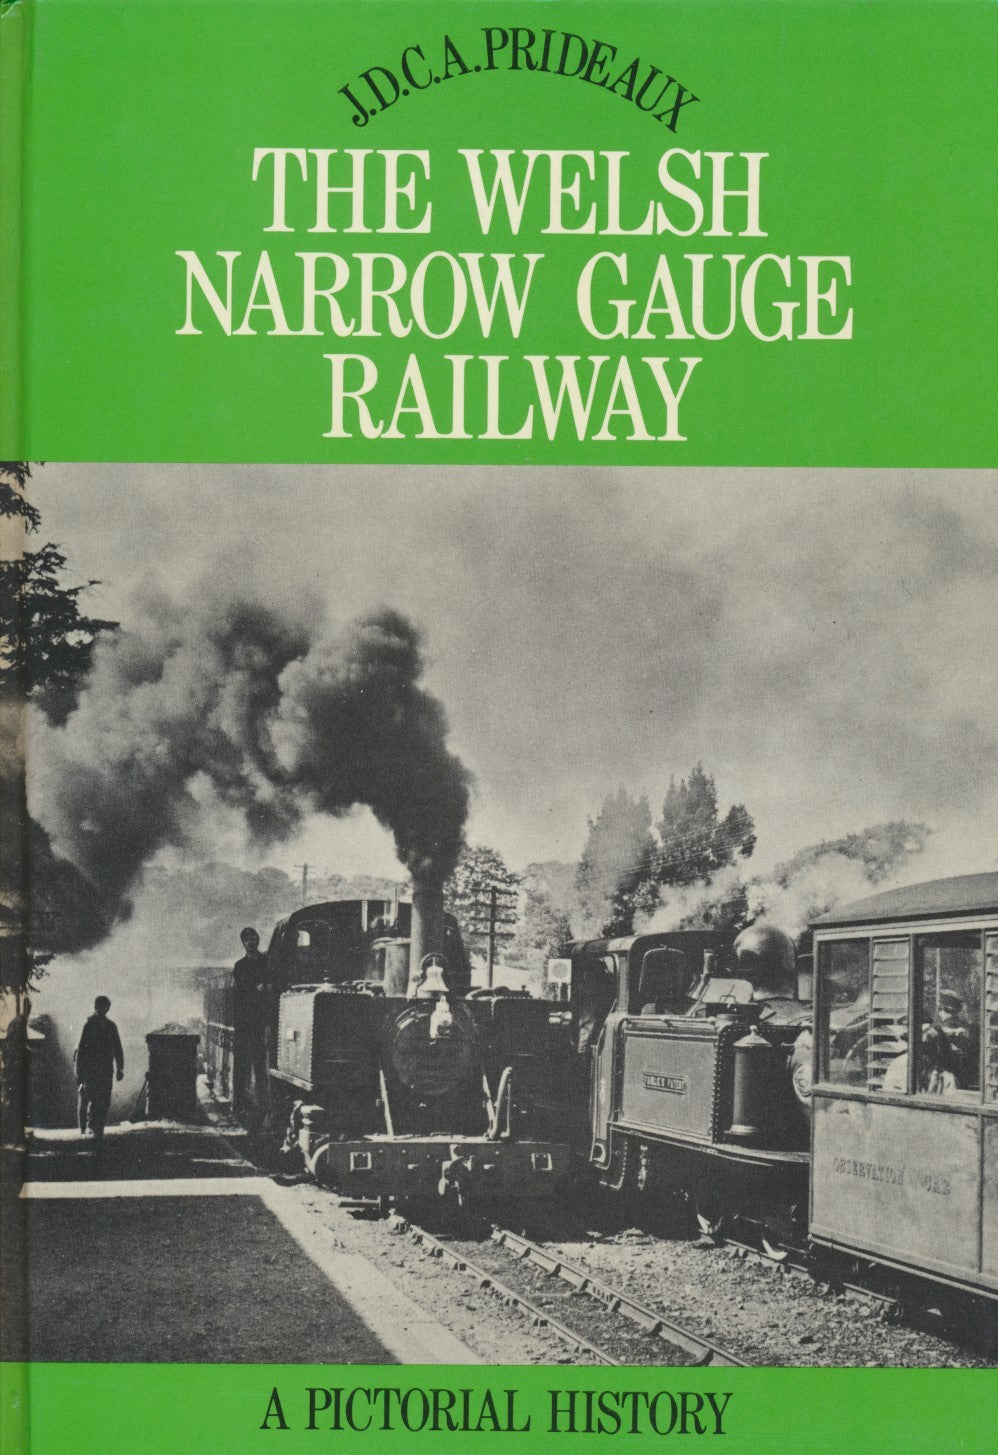 The Welsh Narrow Gauge Railway - A Pictorial History